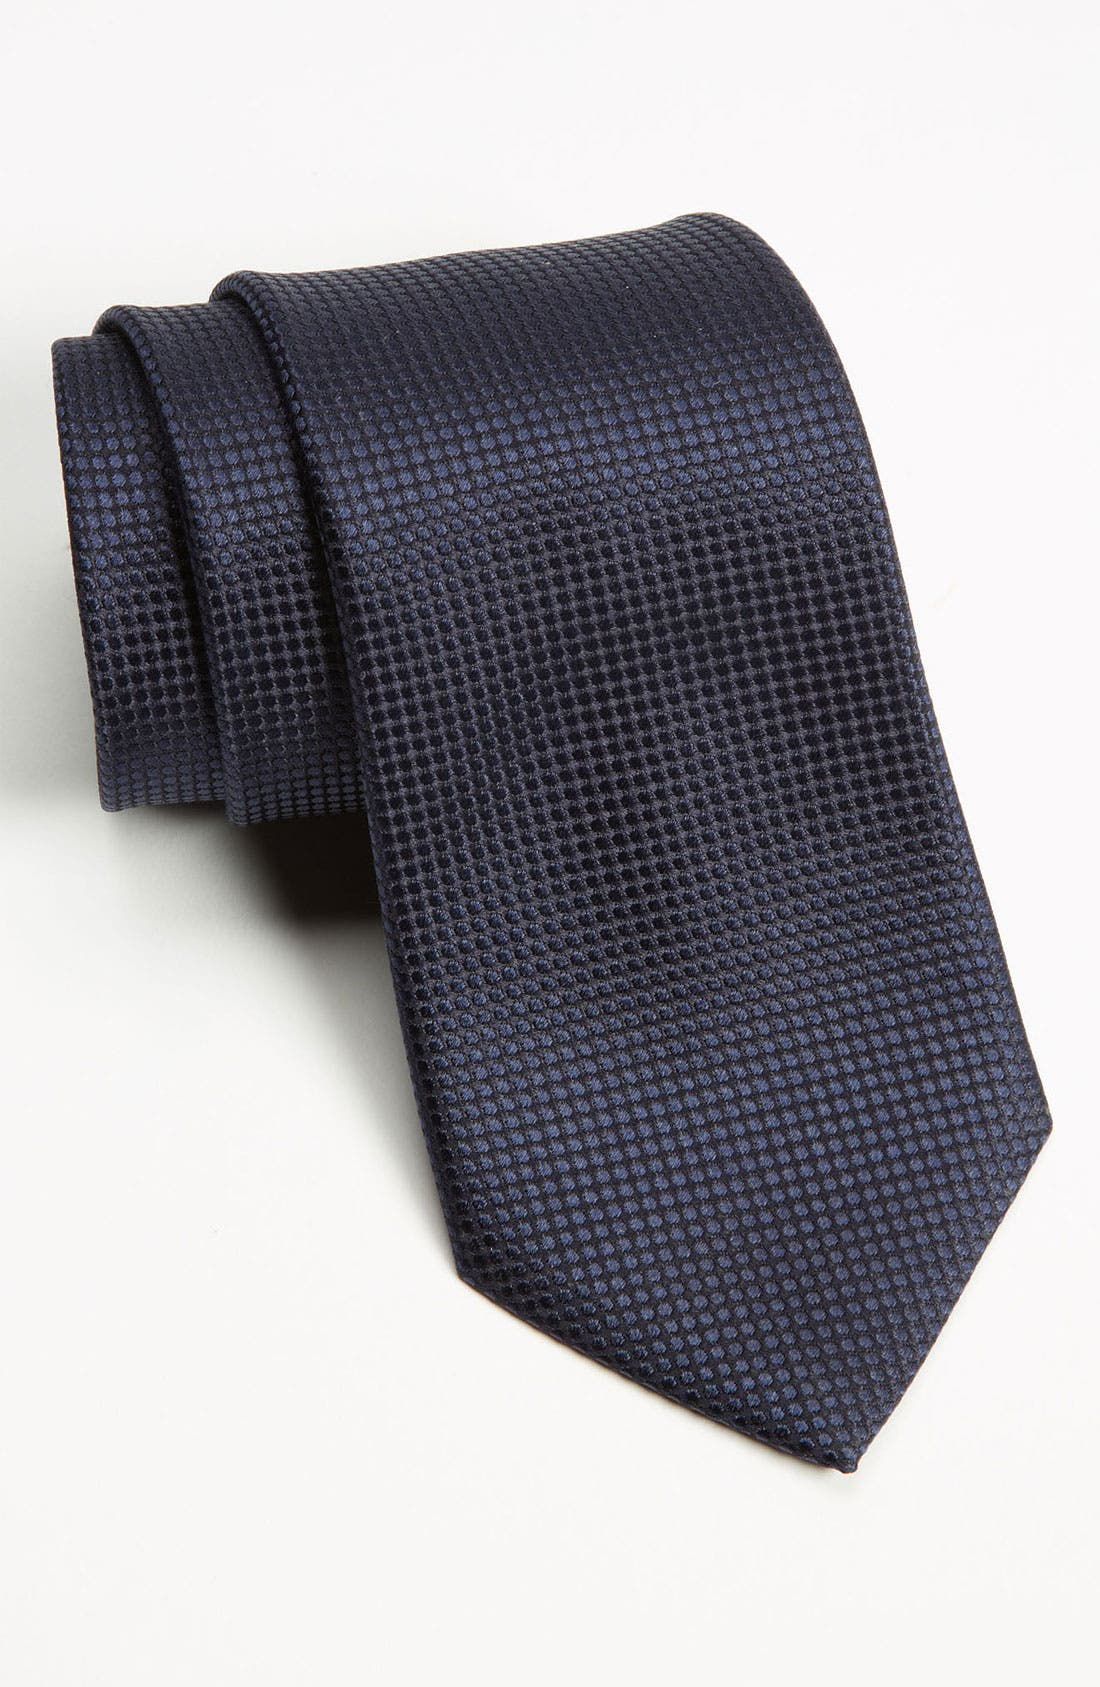 Alternate Image 1 Selected - Z Zegna Dot Woven Silk Tie